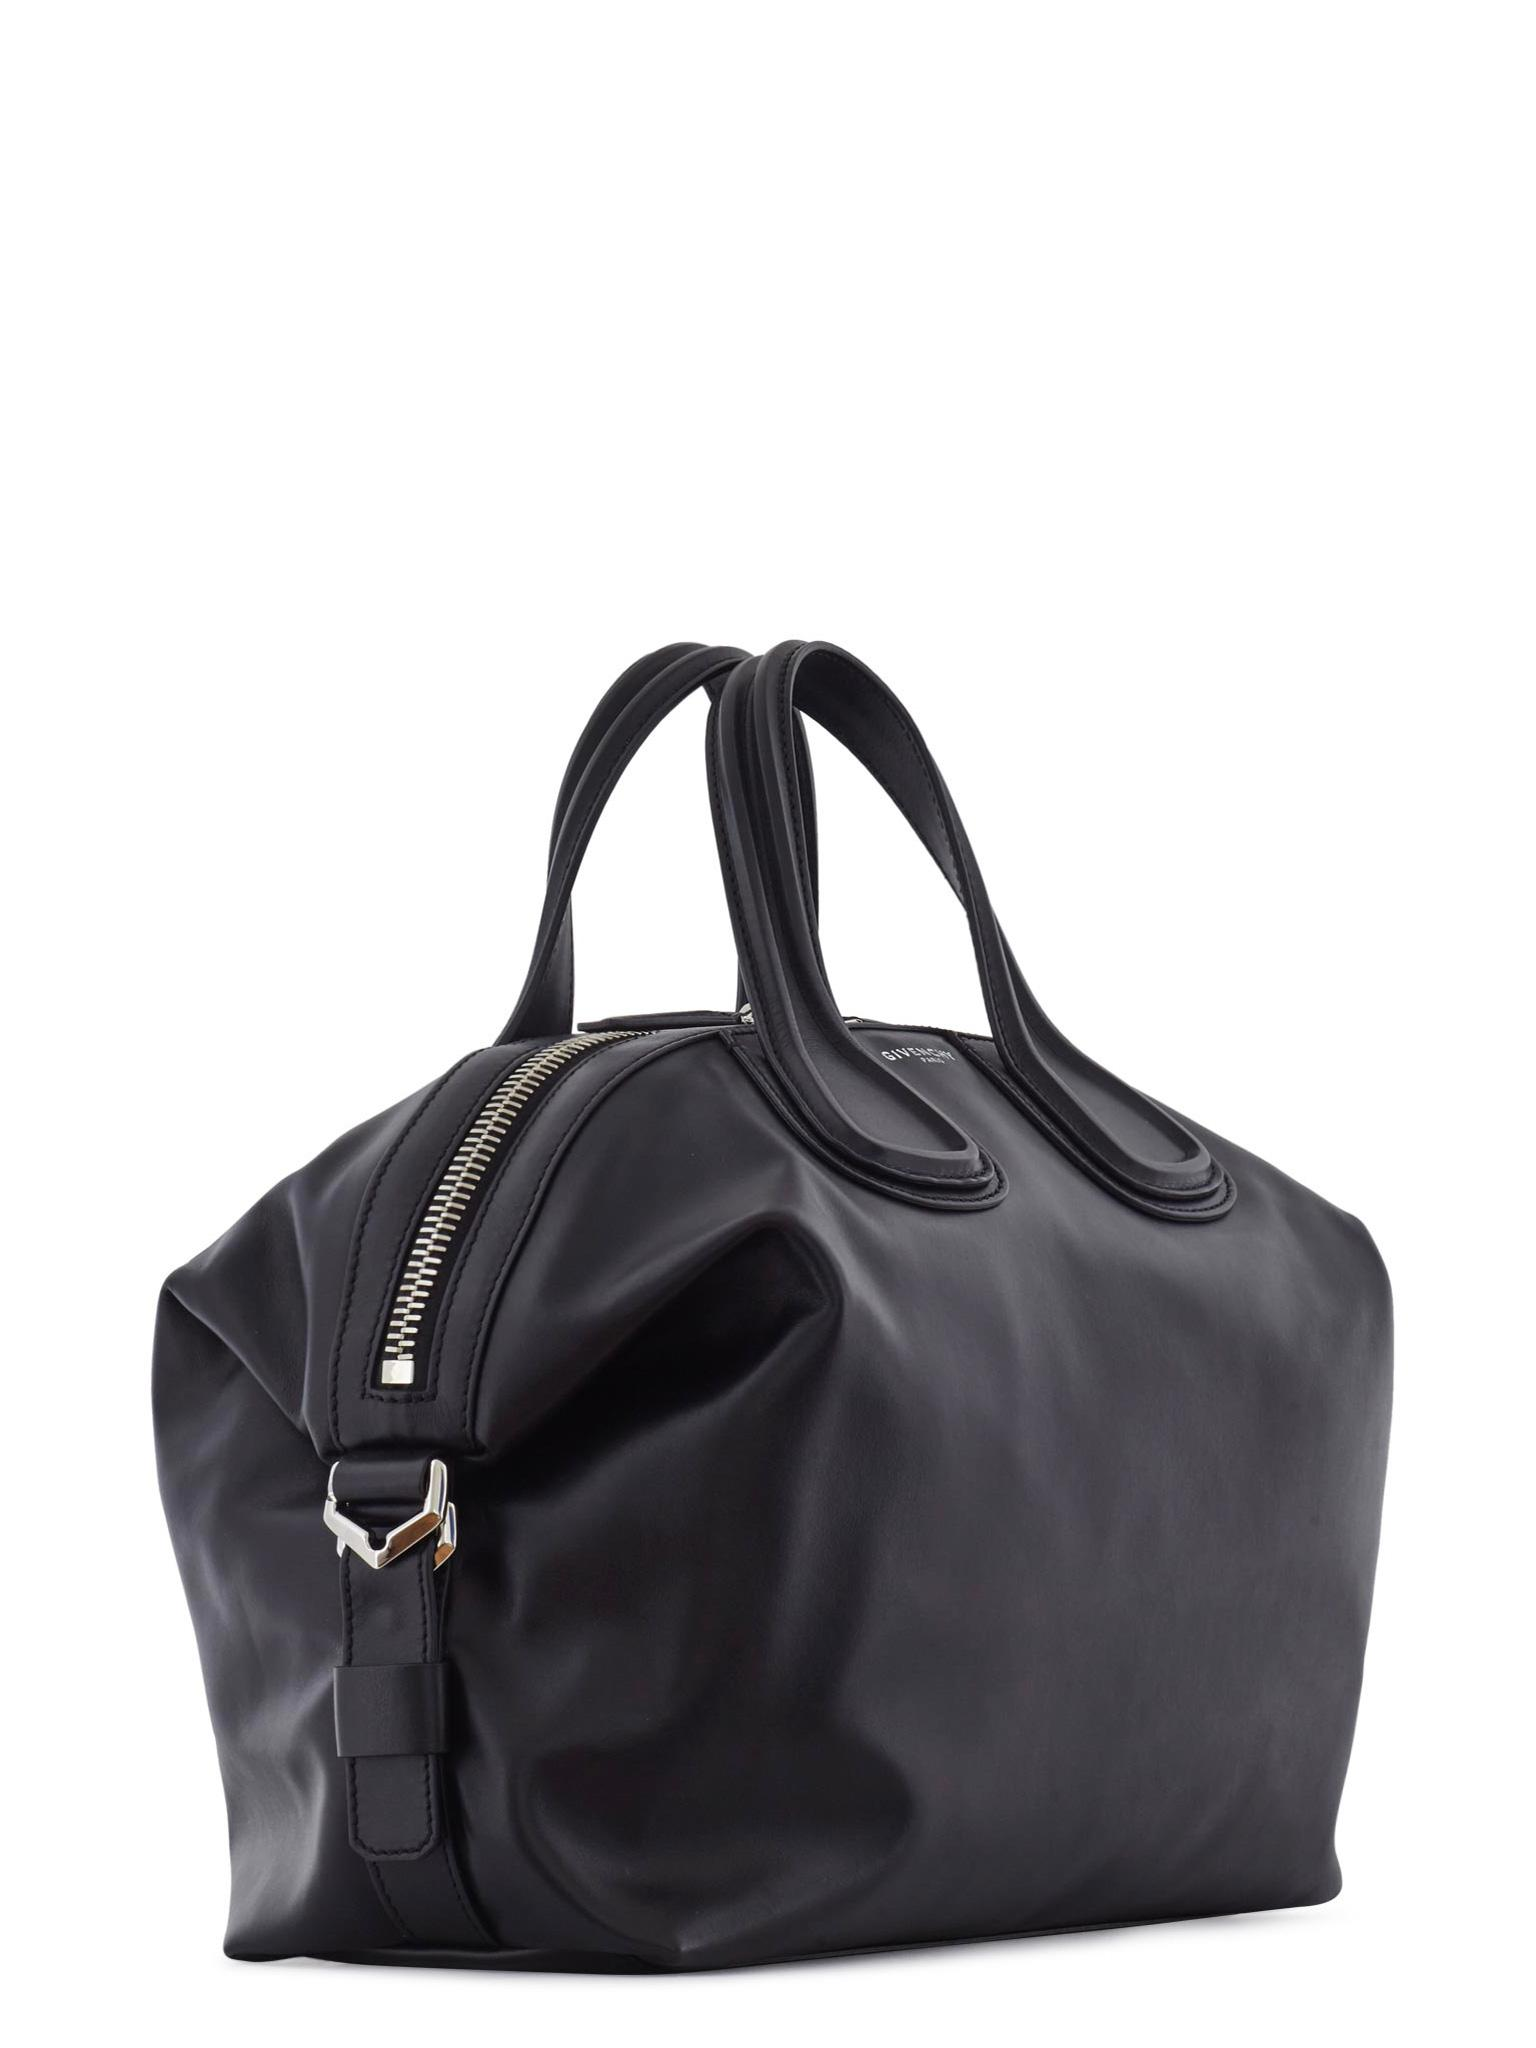 ce2529b09fbe Givenchy Nightingale Logo Strap Leather Bag in Black - Lyst